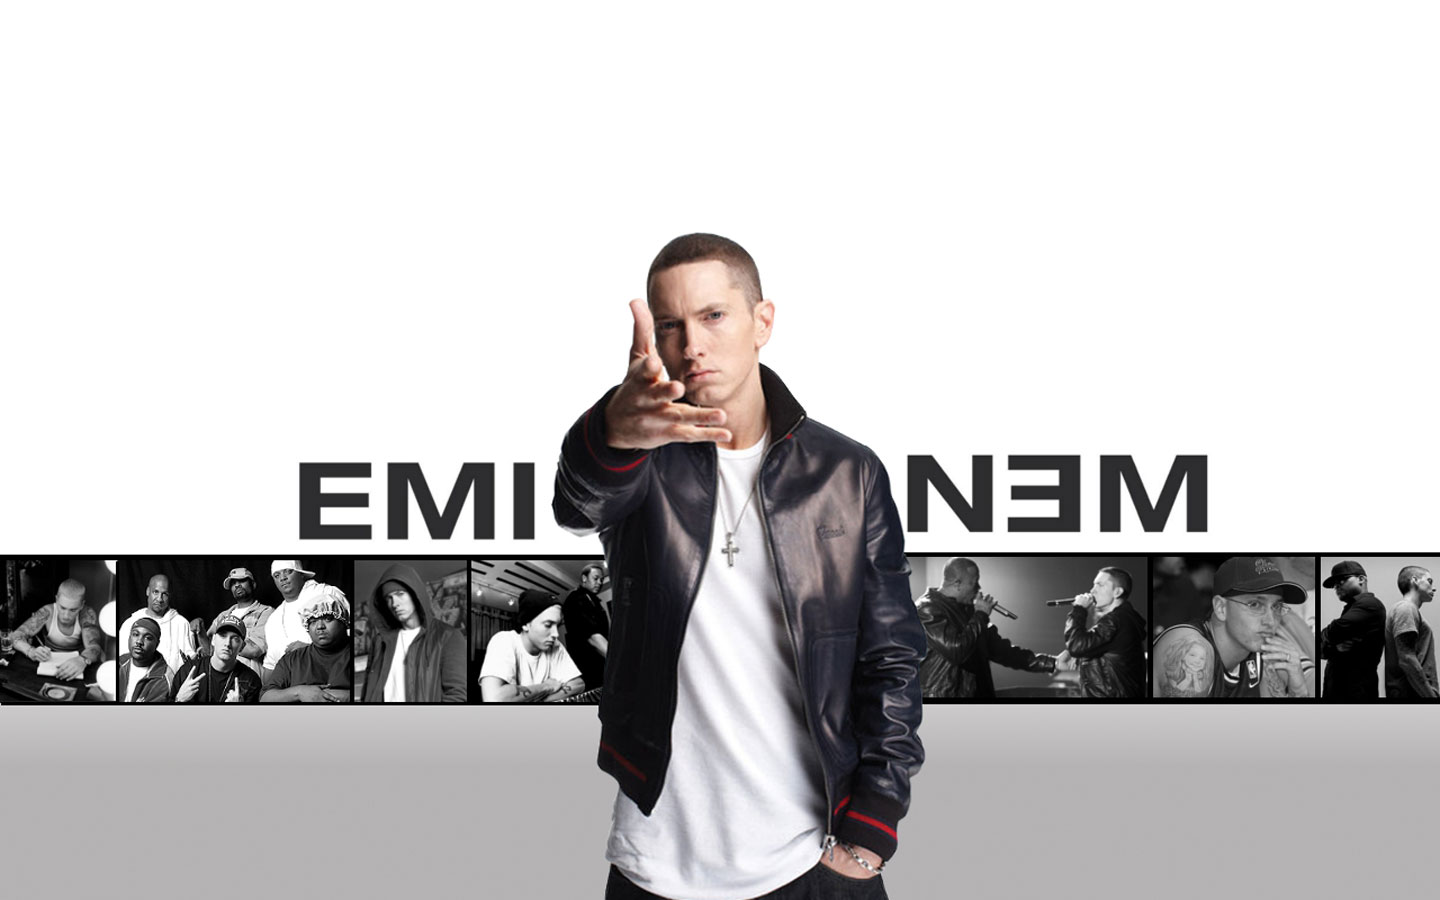 eminem wallpapers 6jpg 1440x900